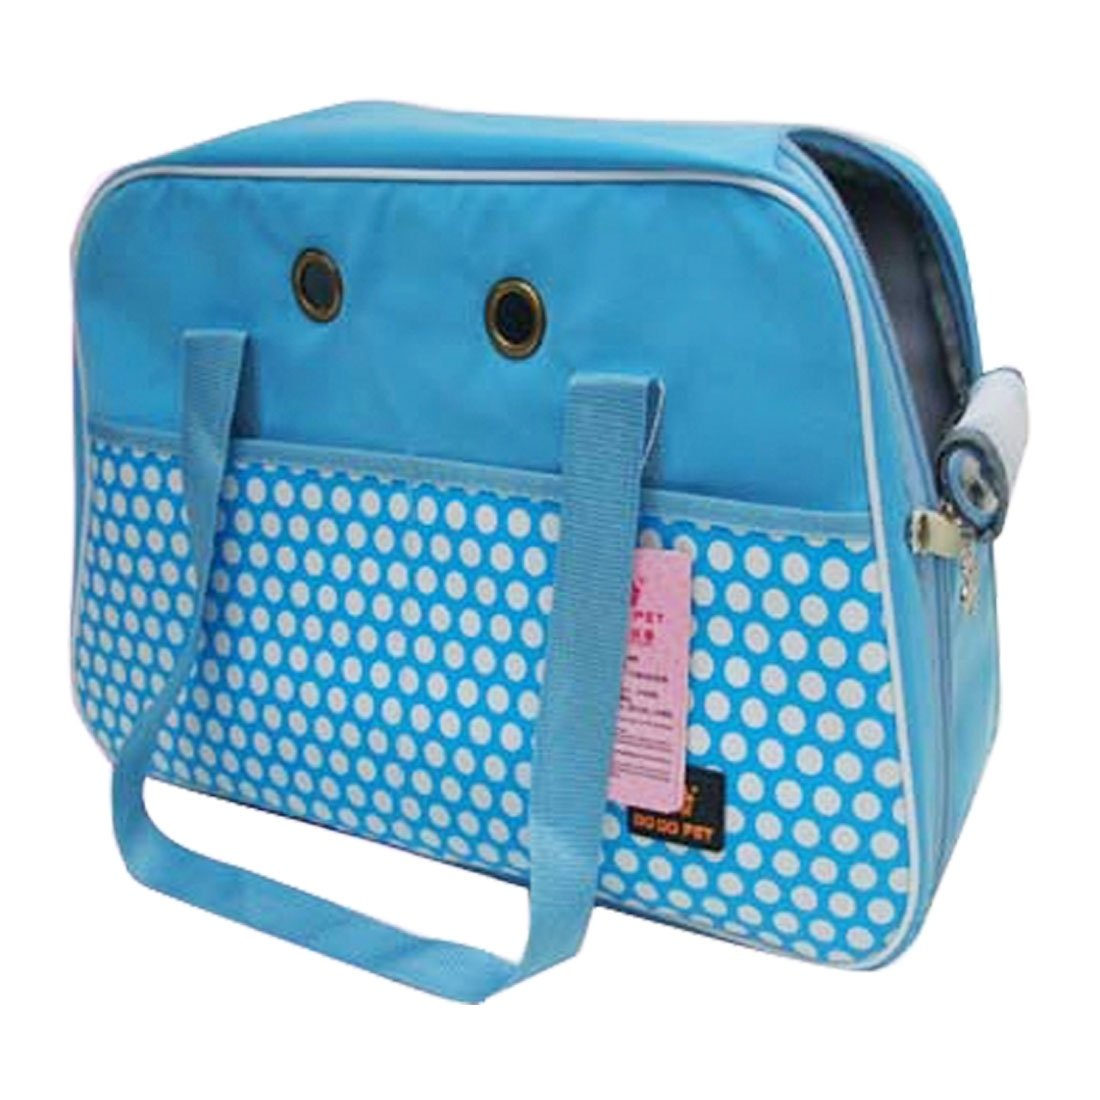 bluee VAXT Sizing 45  28  18cm, Send DODOPET CK-416 Portable Pet Handbag Bag Show Head for Cat Dog and oher Darling Small (color   bluee)